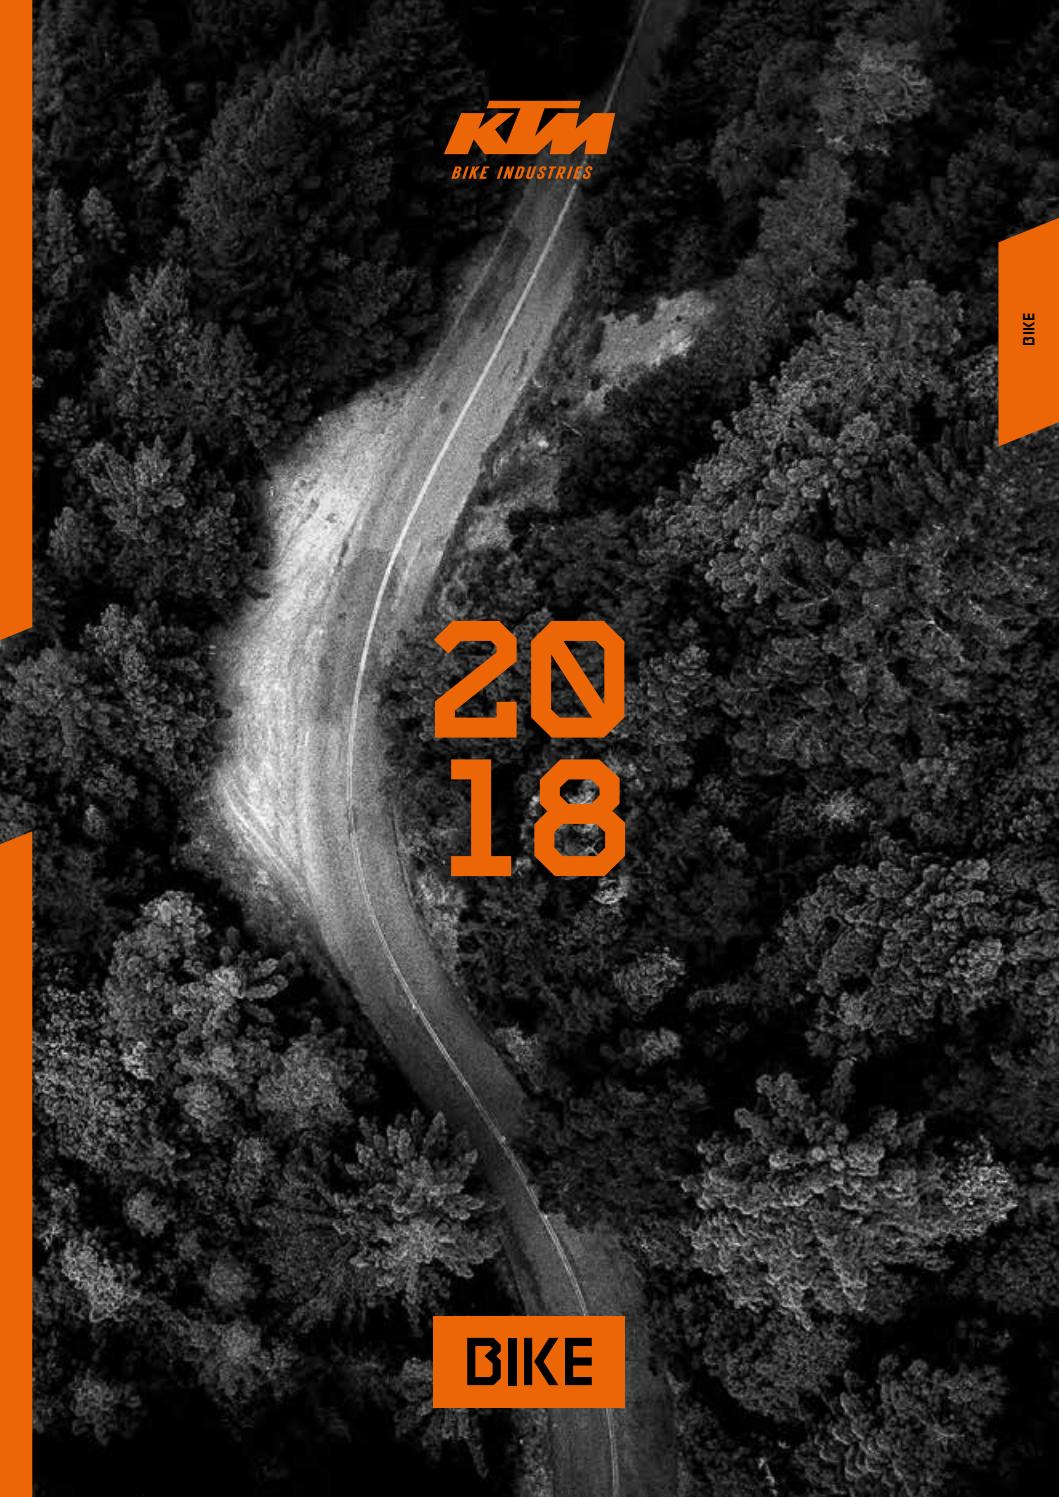 Ktm bike catalogue 2018 screen by Oliver Lill - issuu